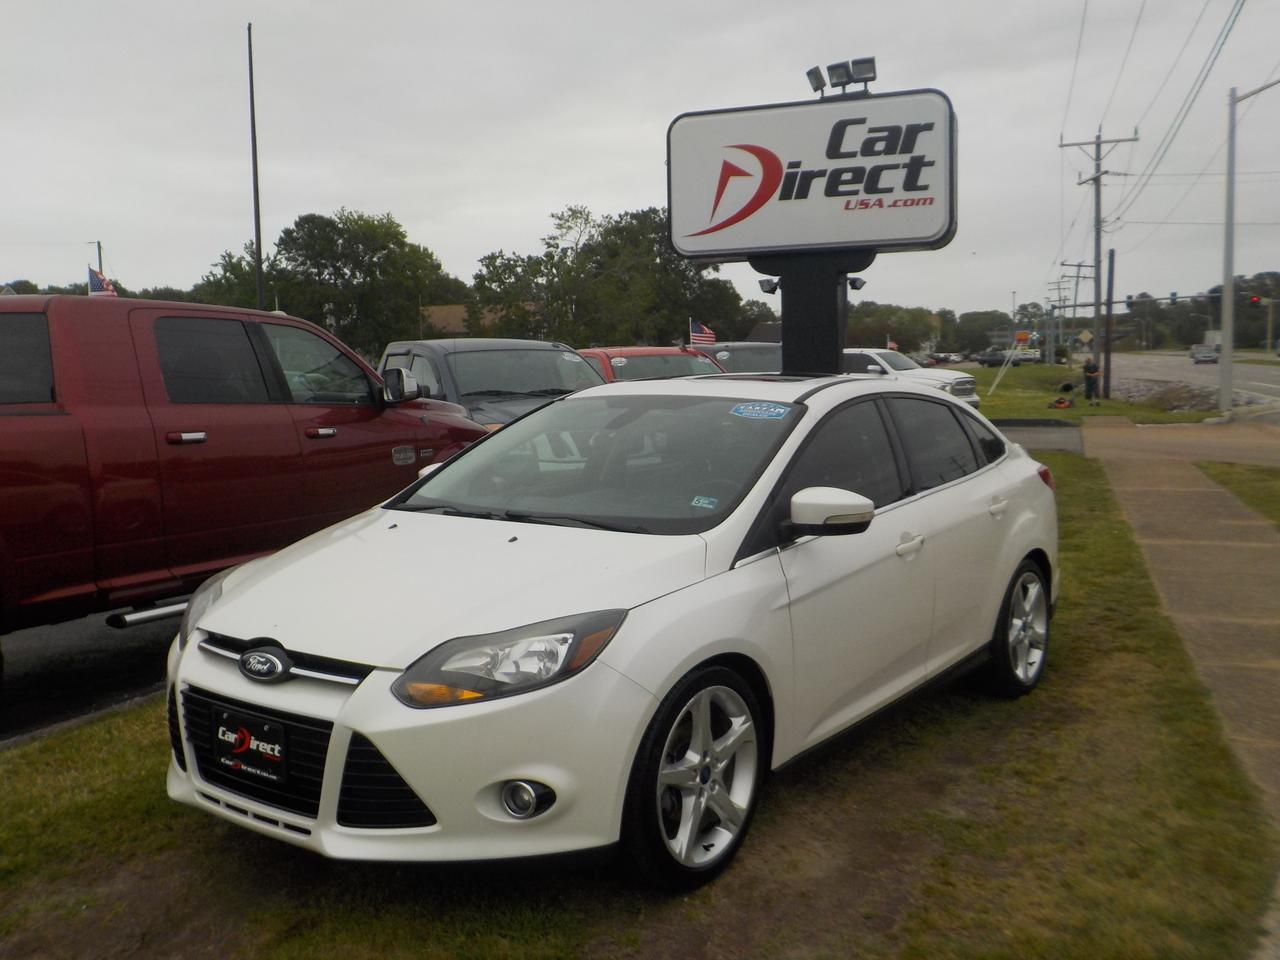 2012 FORD FOCUS TITANIUM, SUNROOF, NAVIGATION, AUX PORT, BLUETOOTH WIRELESS, PARKING SENSORS, TINTED WINDOWS!